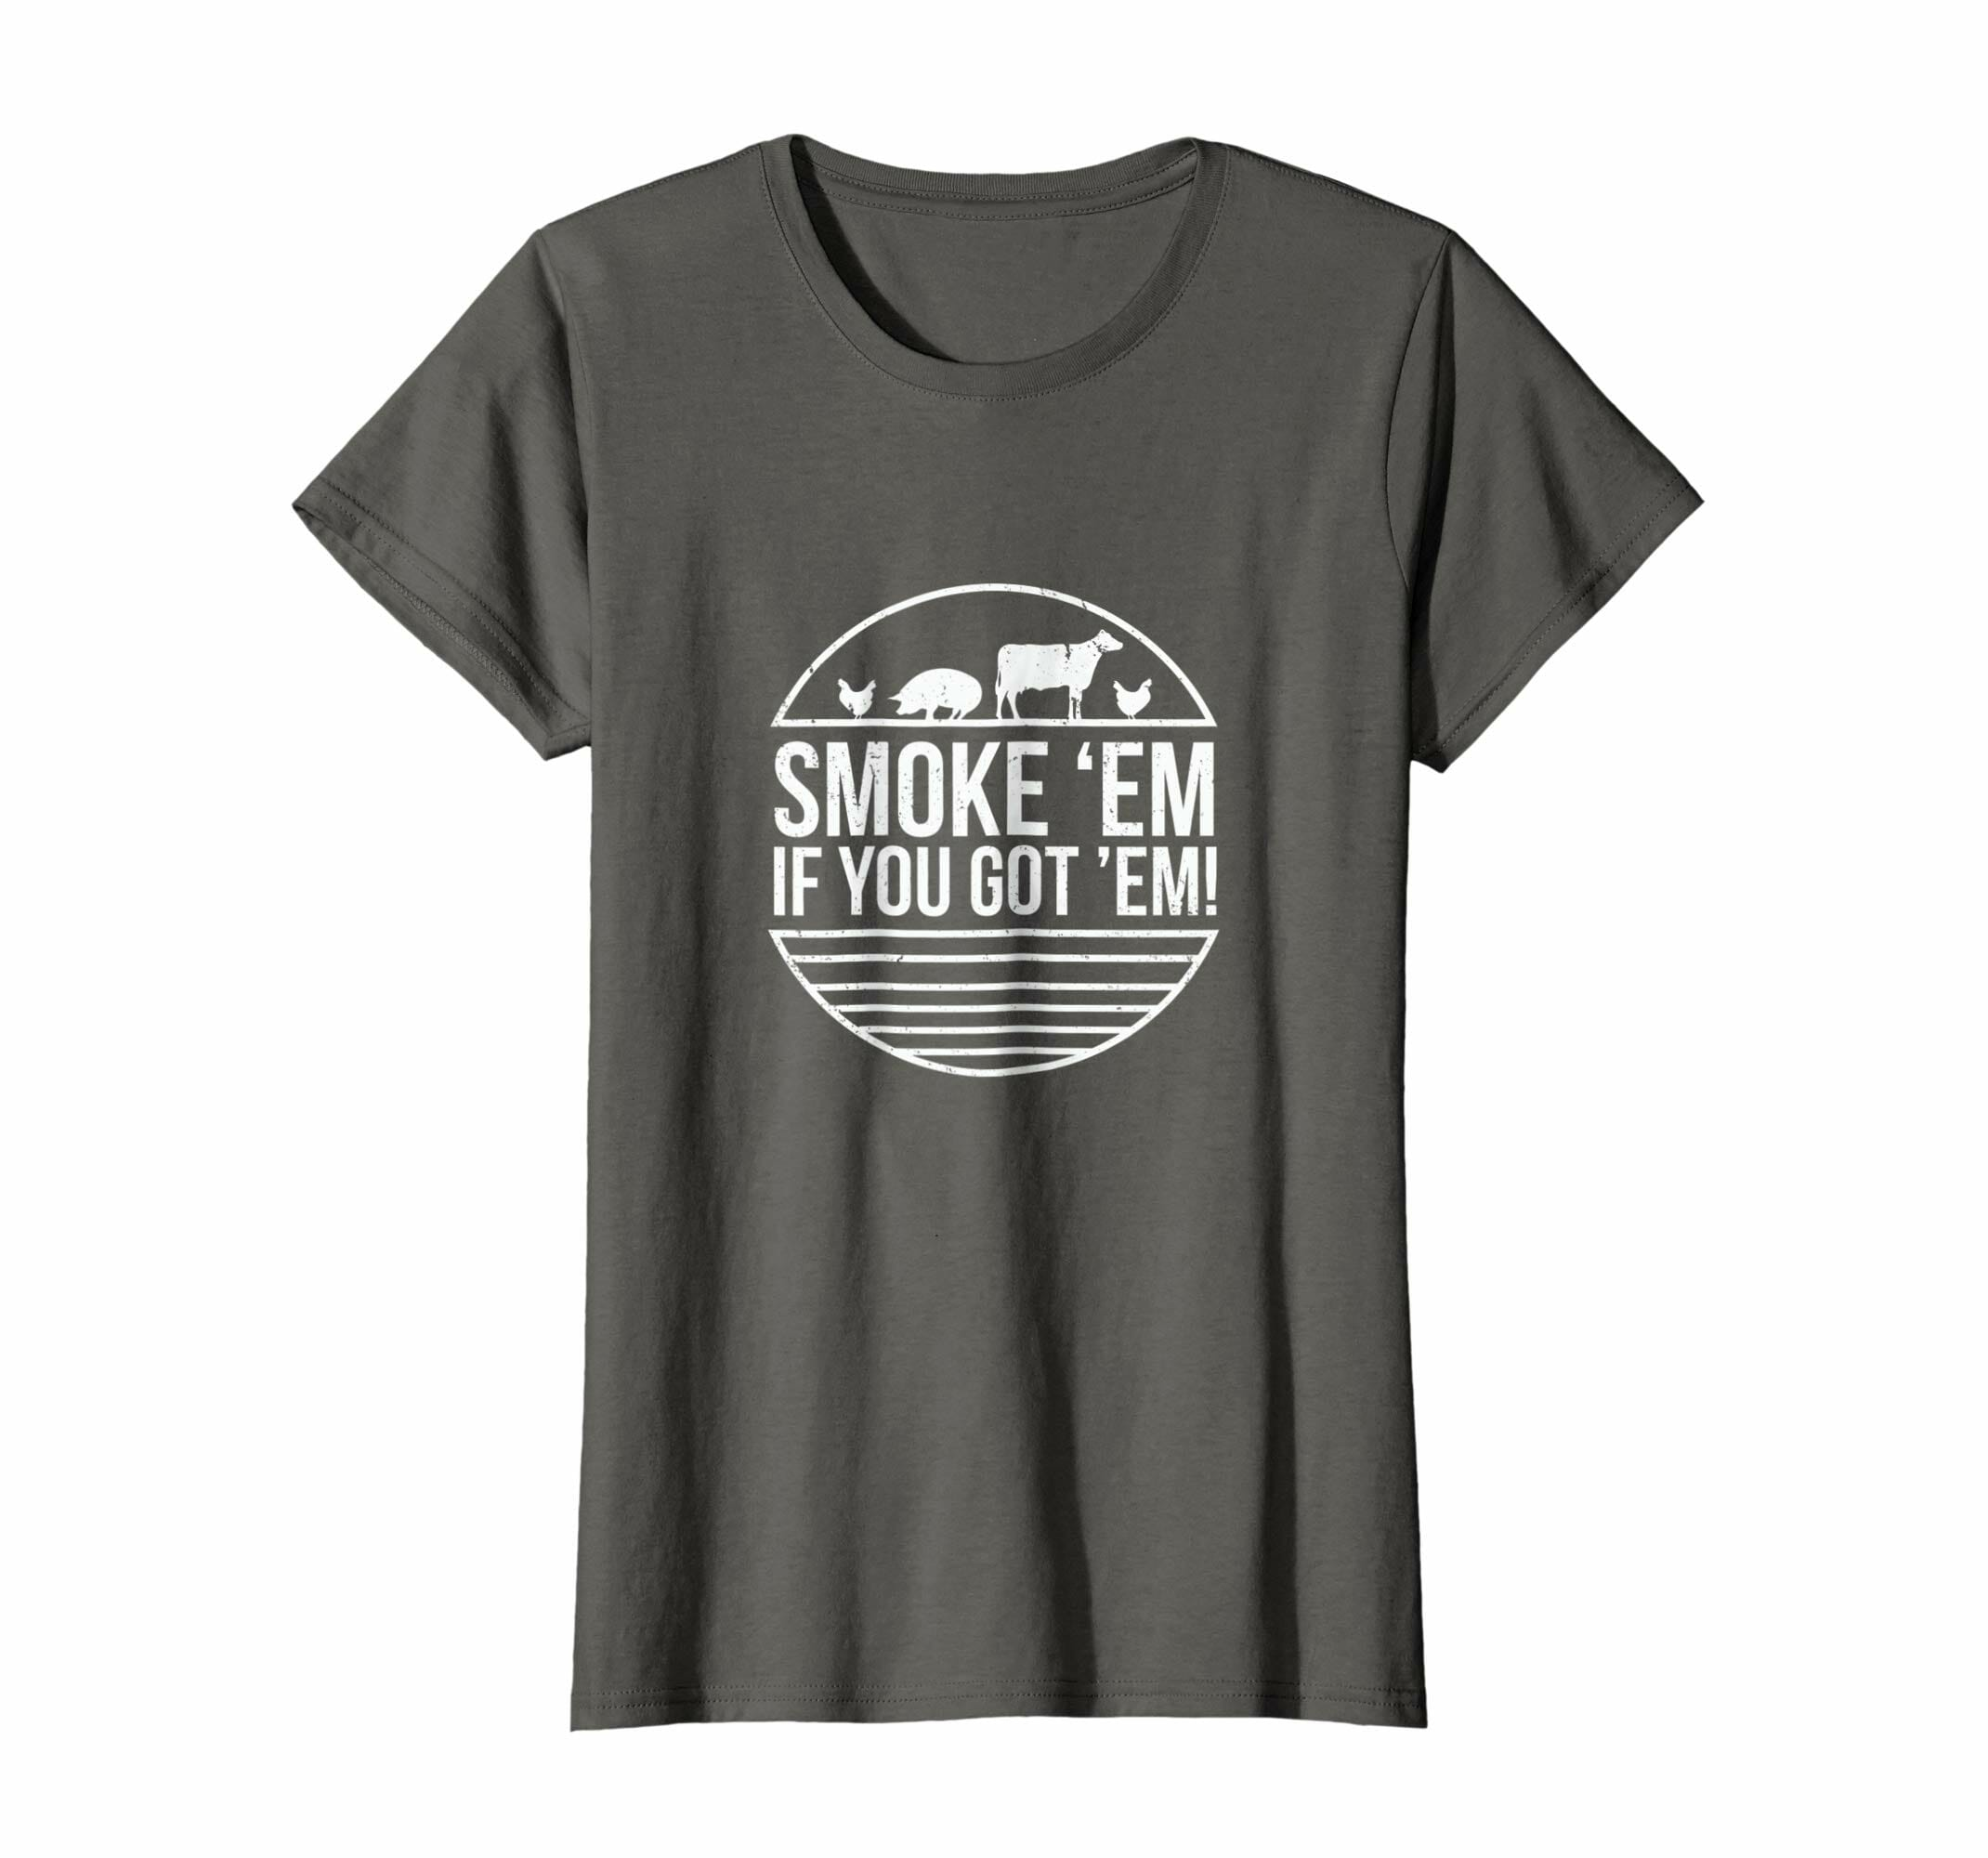 BBQ themed t-shirts are great gifts for BBQ lovers